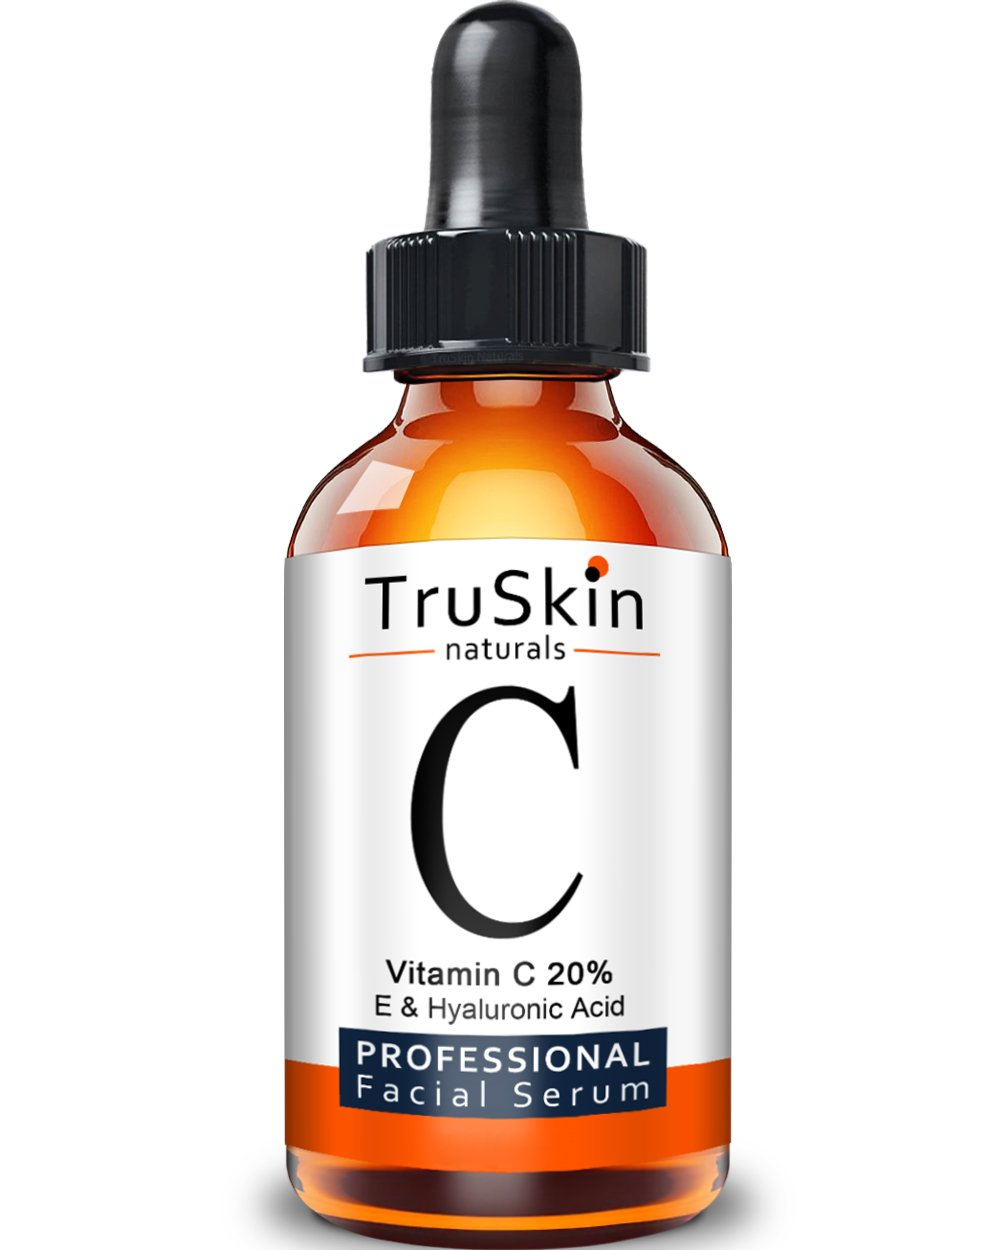 The BEST ORGANIC Vitamin C Serum for Face with Hyaluronic Acid | 20% C + Vitamin E | Professional Facial Skin Care Formula | Topical Vitamin C with Natural & Organic Anti Ageing Ingredients Shown to Boost Collagen, Plump Skin, Repair Sun Damage, Fade S